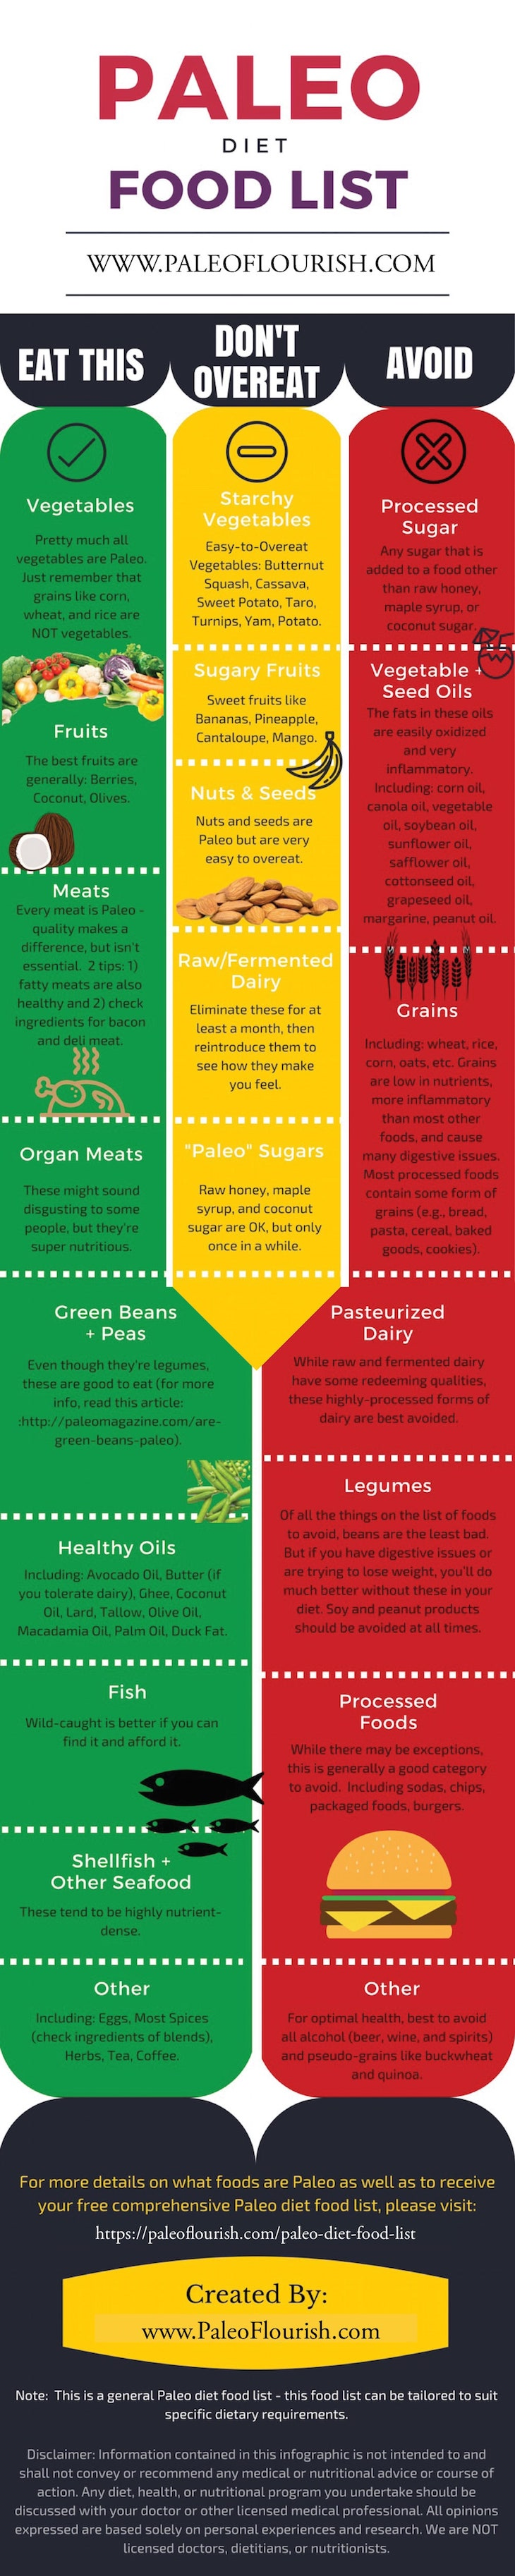 The Comprehensive Food Guide for a Paleo Diet - Infographic